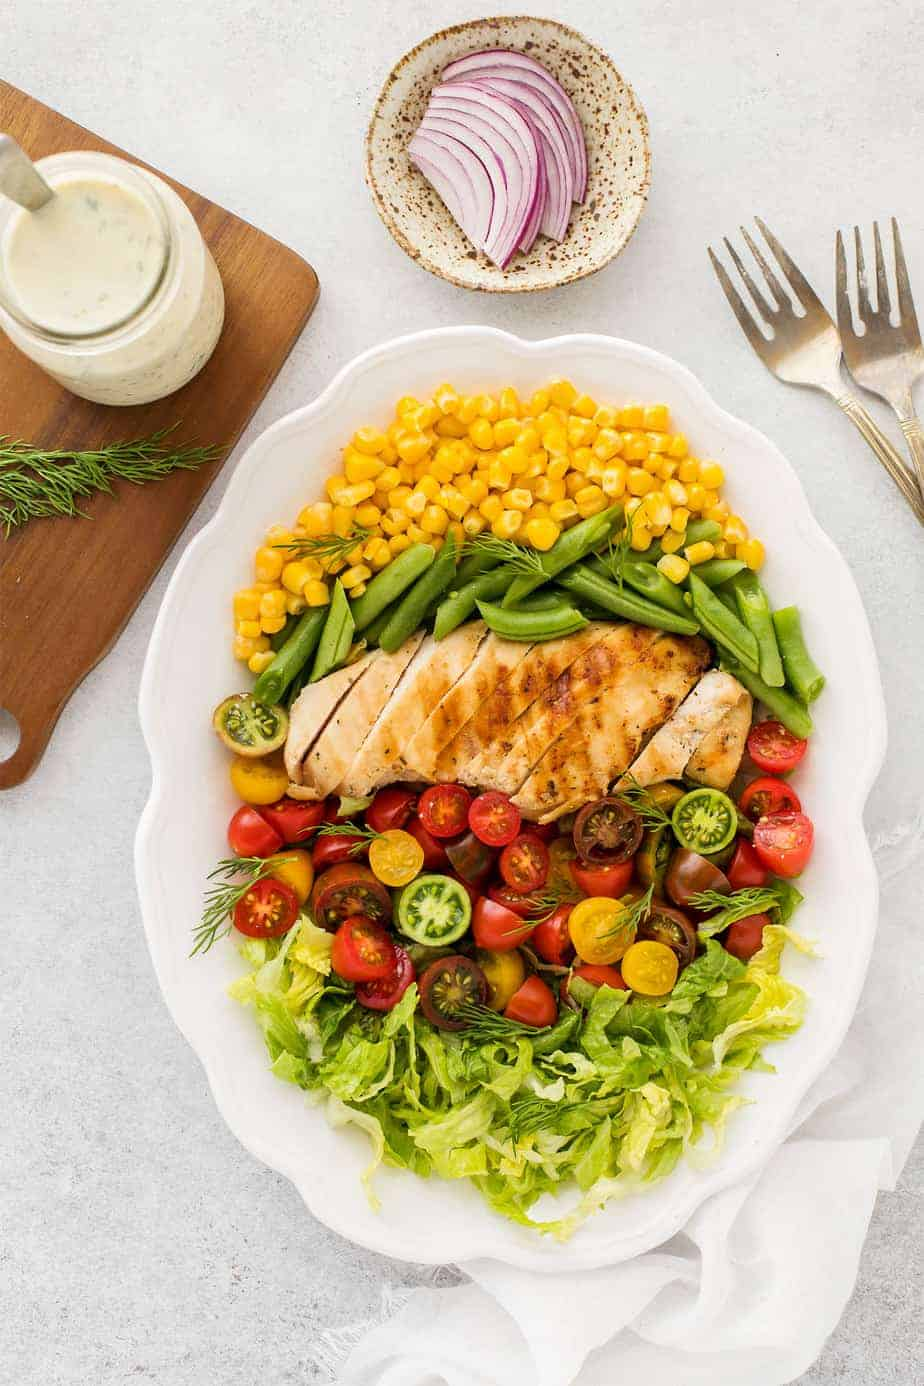 Garden Fresh Salad Recipe with Grilled Chicken and Buttermilk Dressing